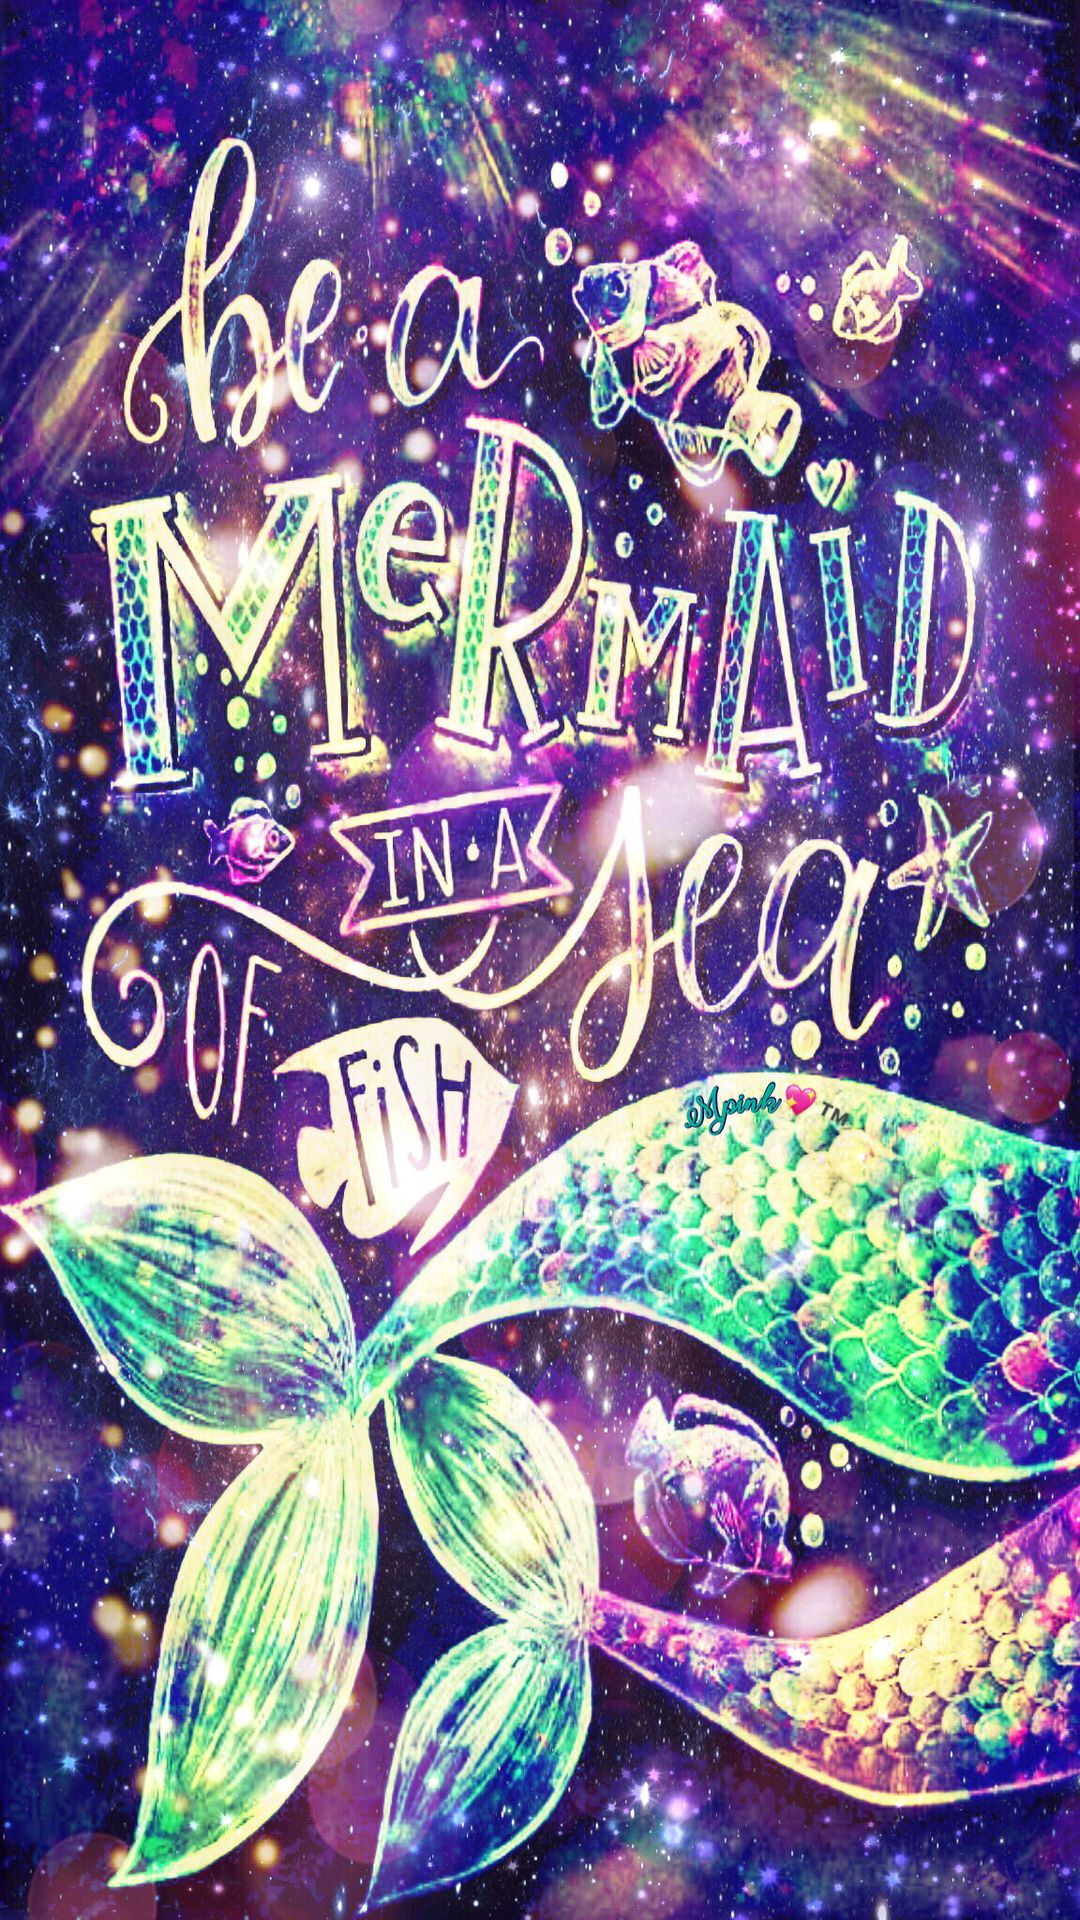 Be A Mermaid Galaxy Wallpaper Androidwallpaper Iphonewallpaper Wallpaper Galaxy Sparkle Glitter Lockscreen Mermaid Wallpapers Mermaid Art Mermaid Quotes